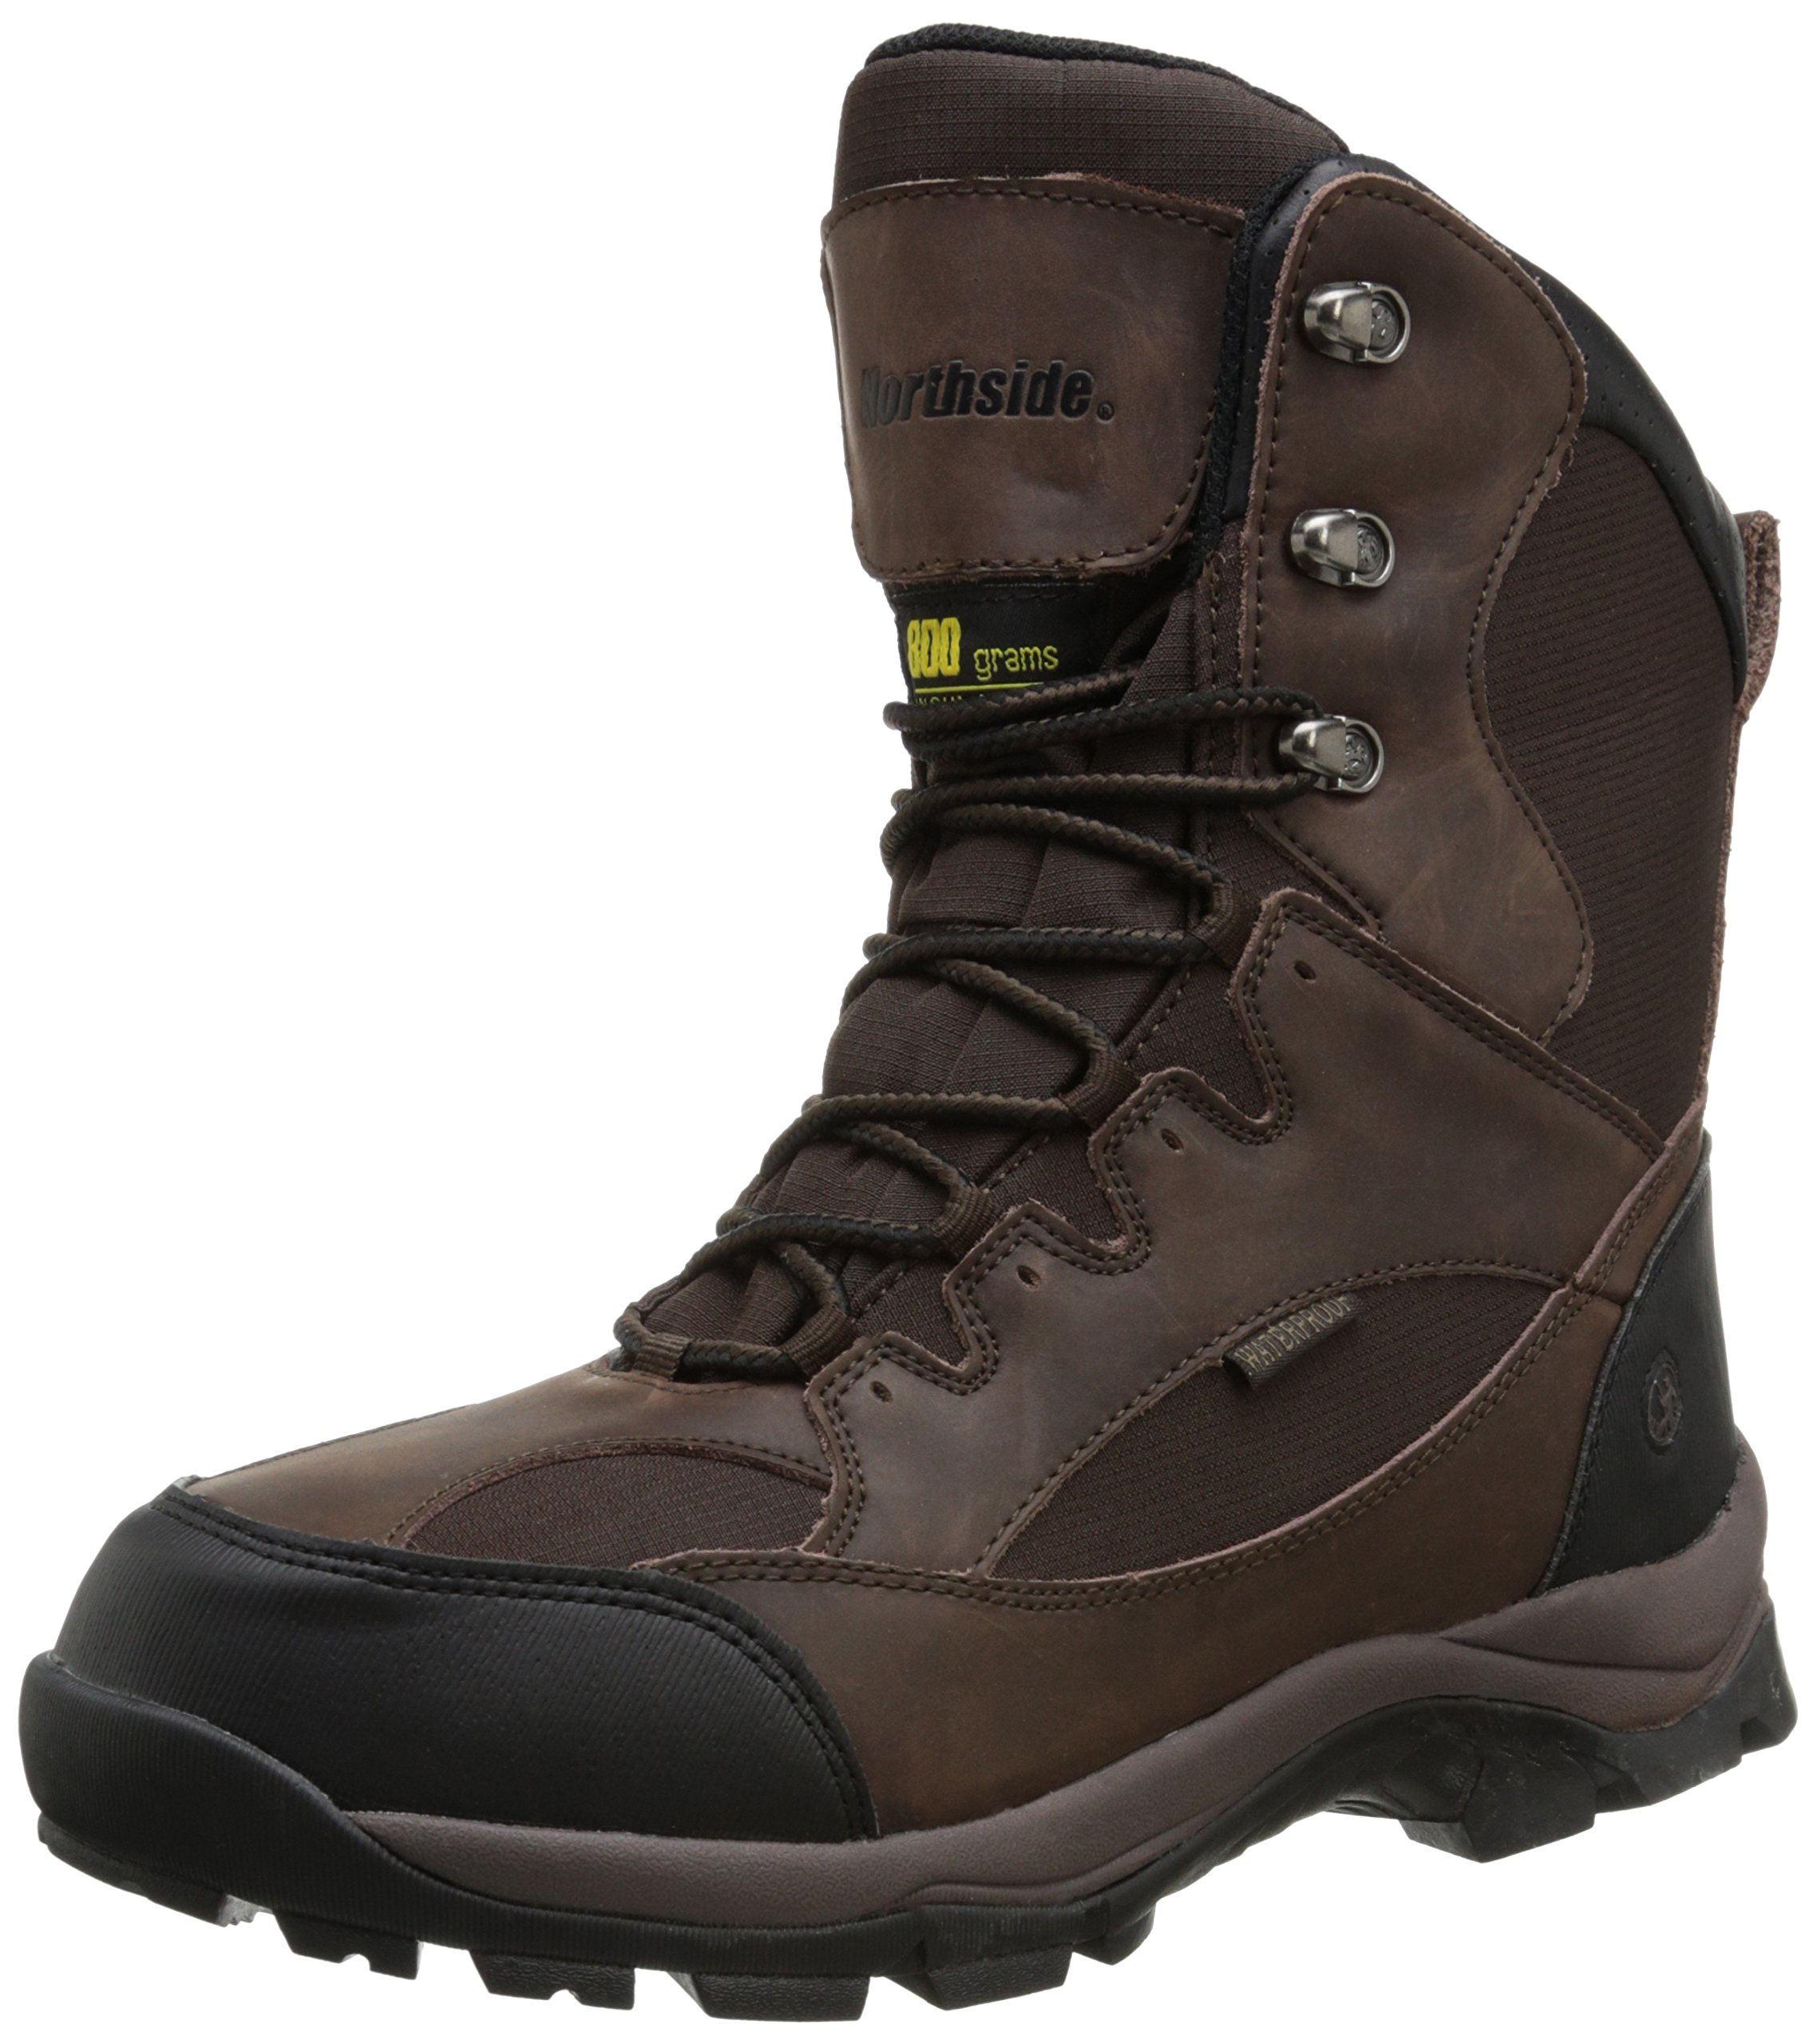 Northside Men's Renegade 800-M, Dark Brown, 9 M US